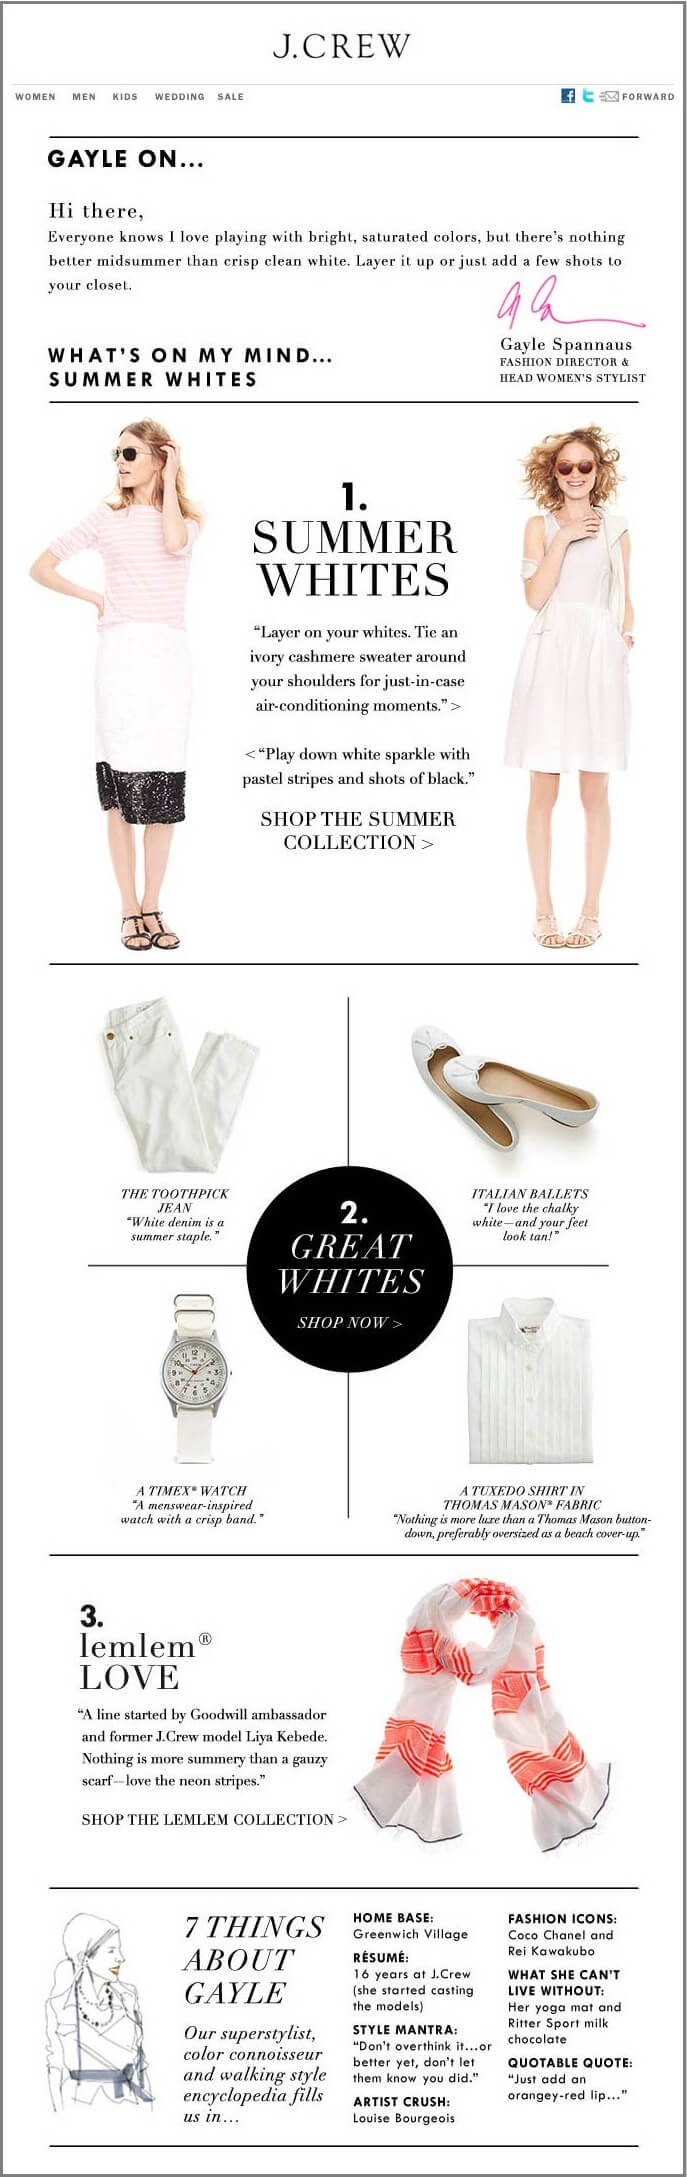 J-Crew-Female-email list segmentation